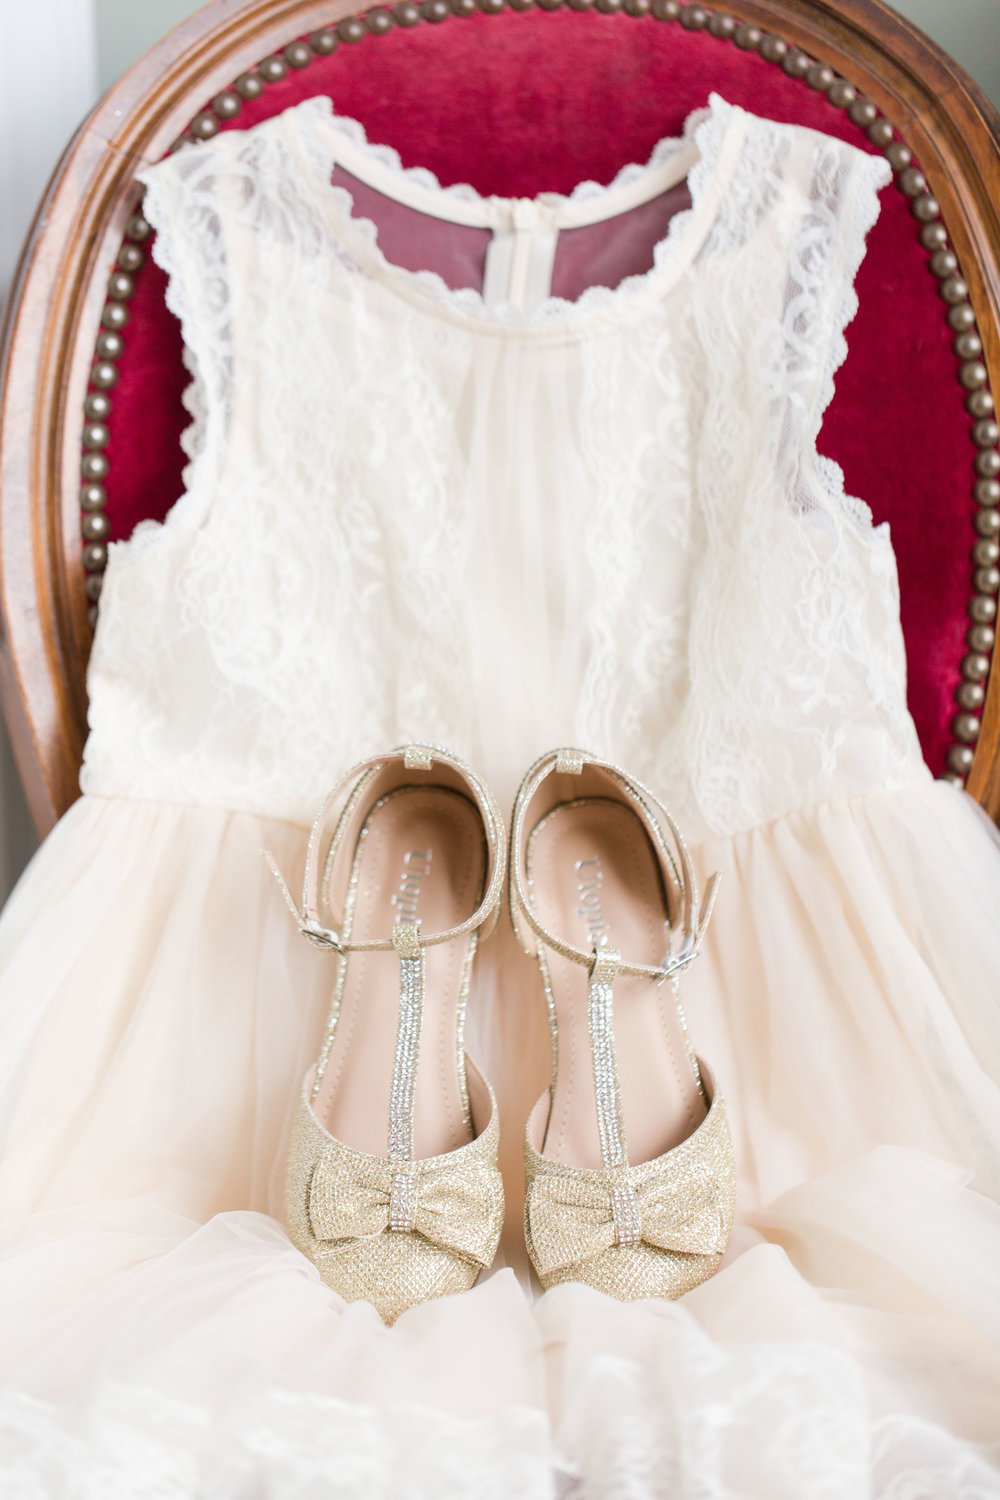 leesburg_va_wedding_photographer-12.jpg